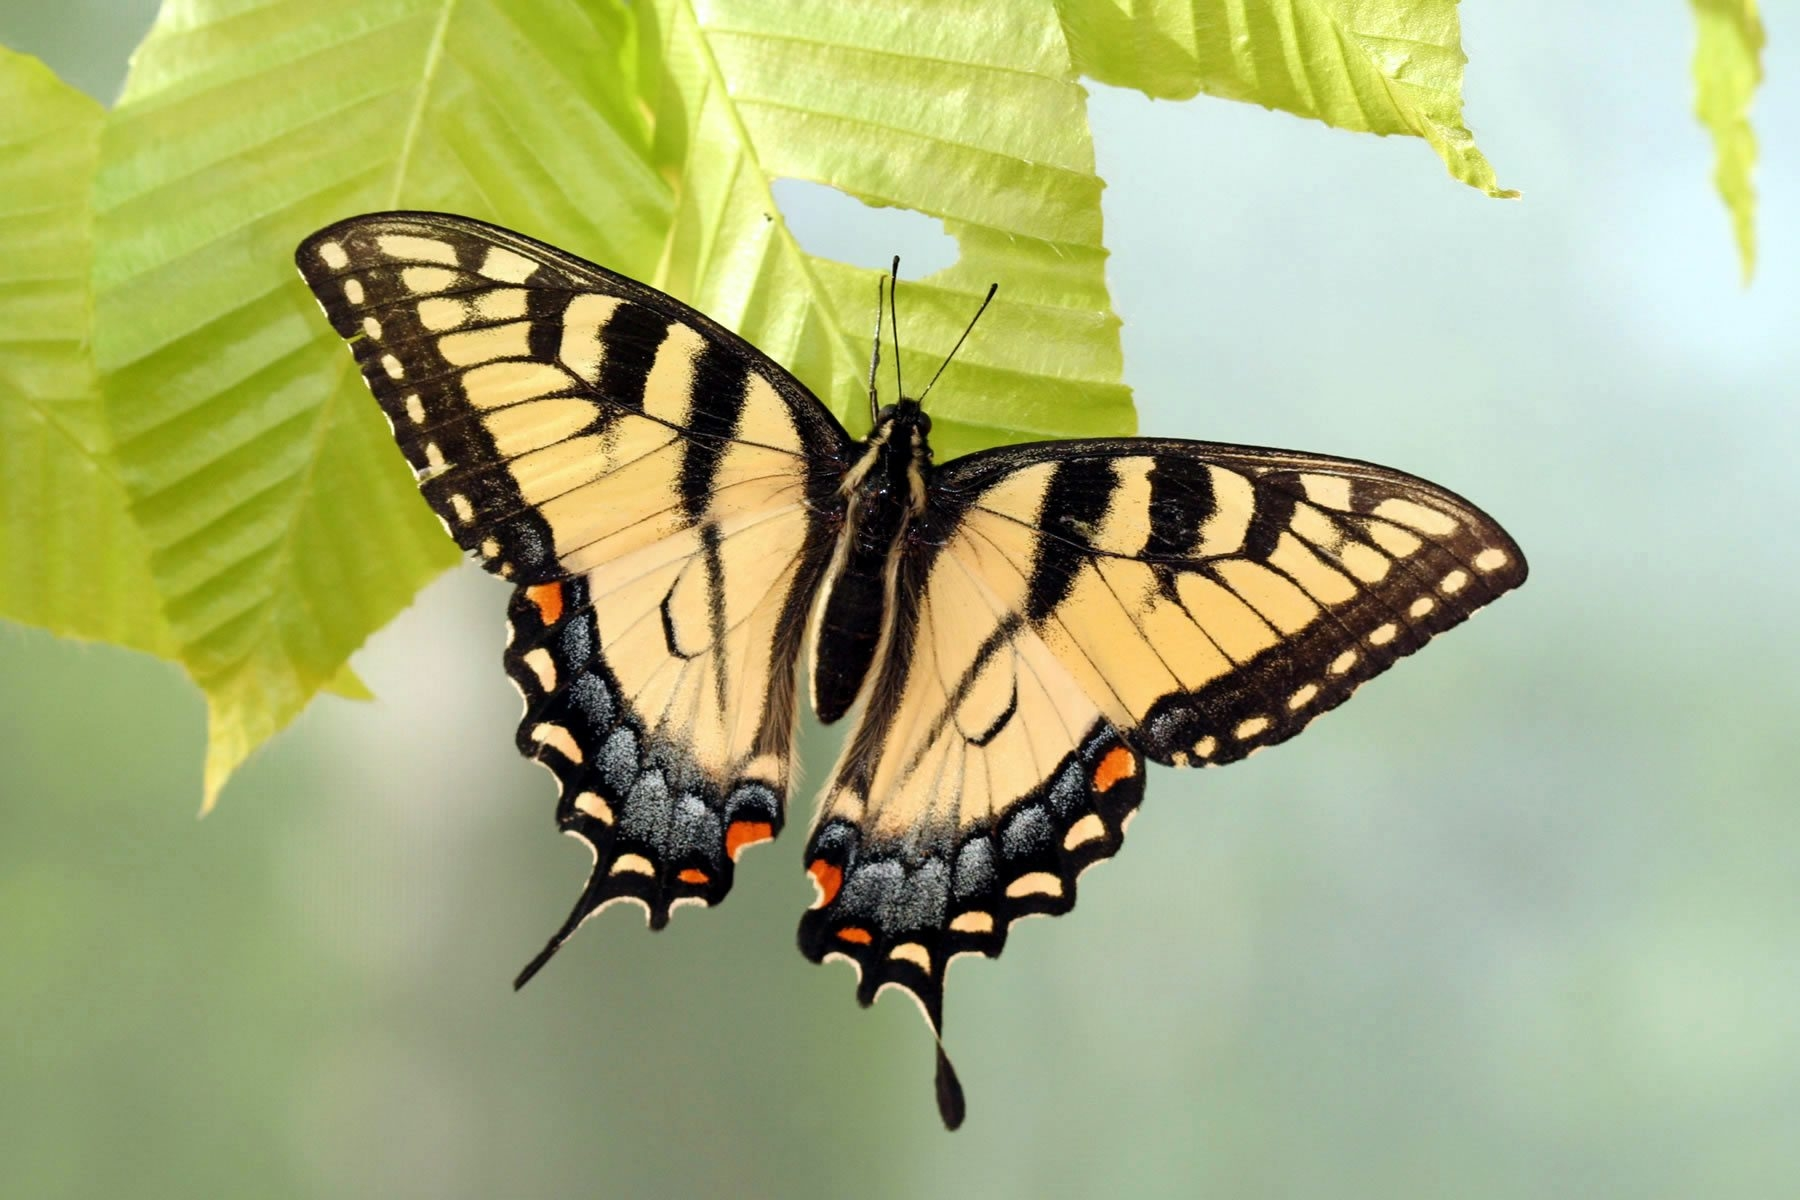 The swallowtail can mimic the wing patterns of toxic butterflies.